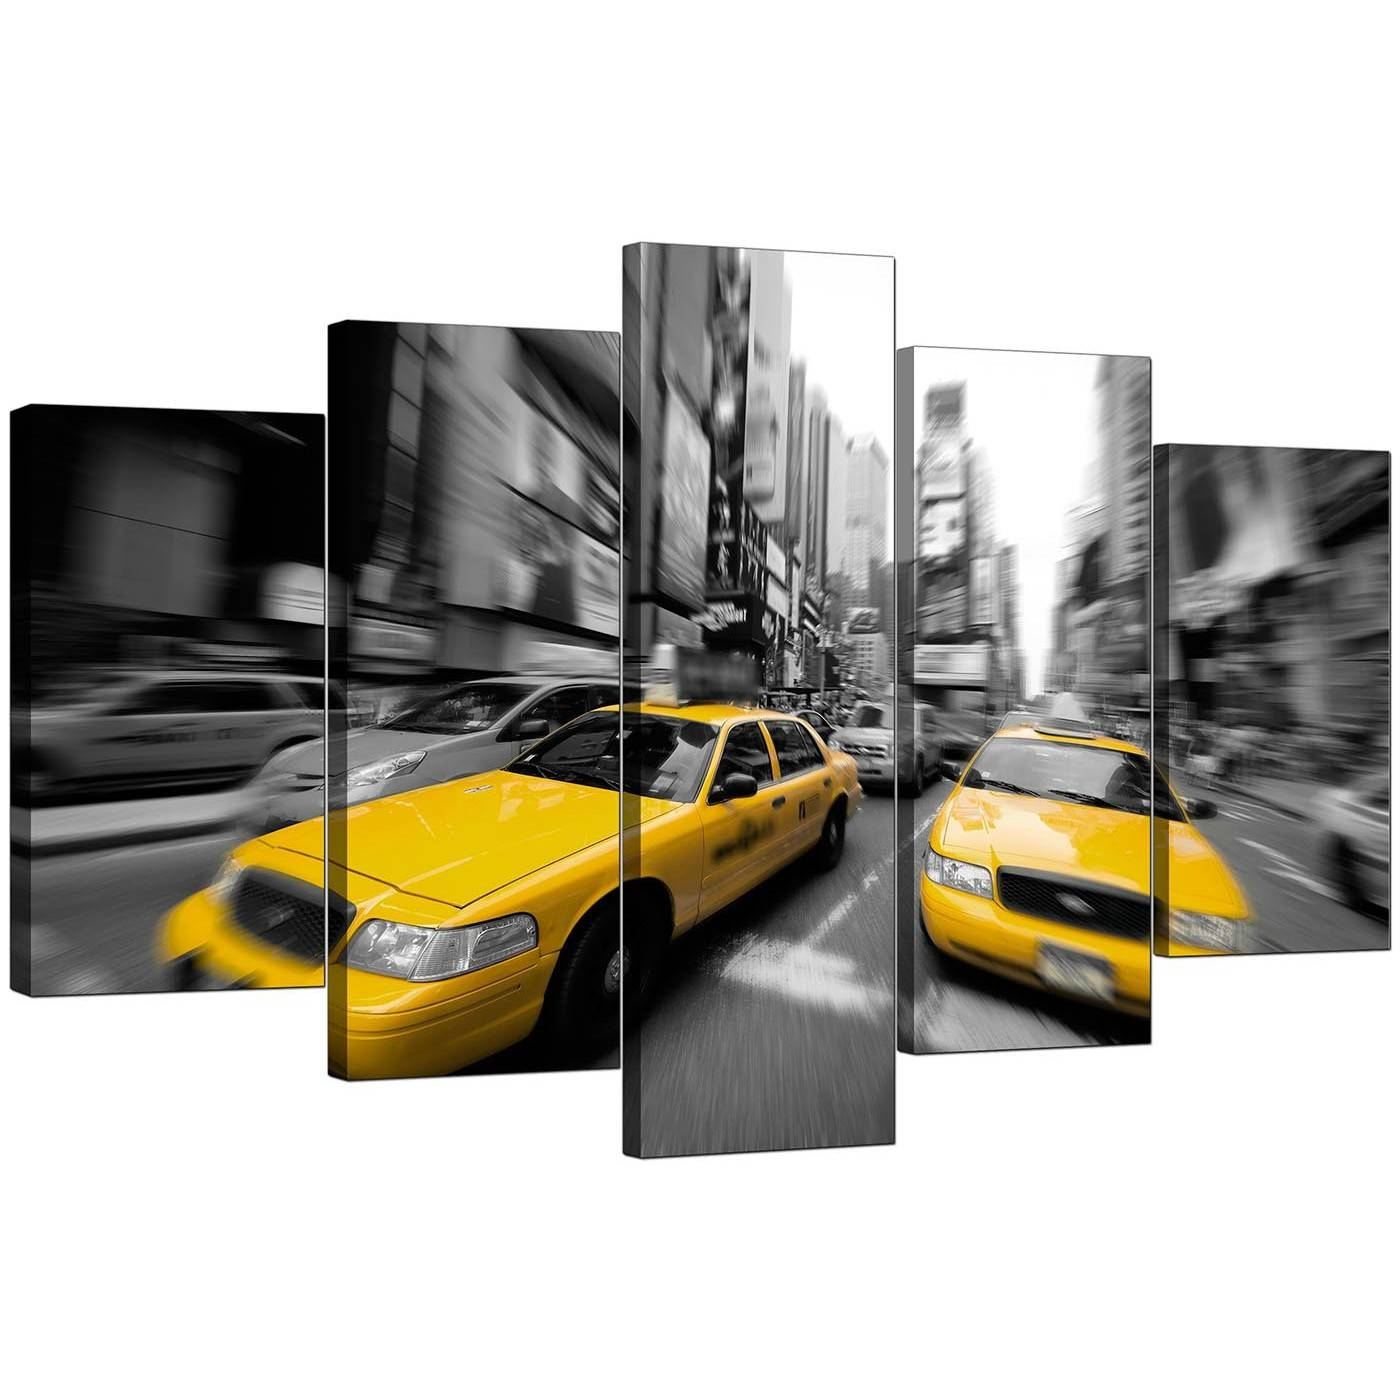 Large Yellow New York Taxi Canvas Prints Set Of 5 In Black & White Within Newest Black And White New York Canvas Wall Art (View 8 of 20)